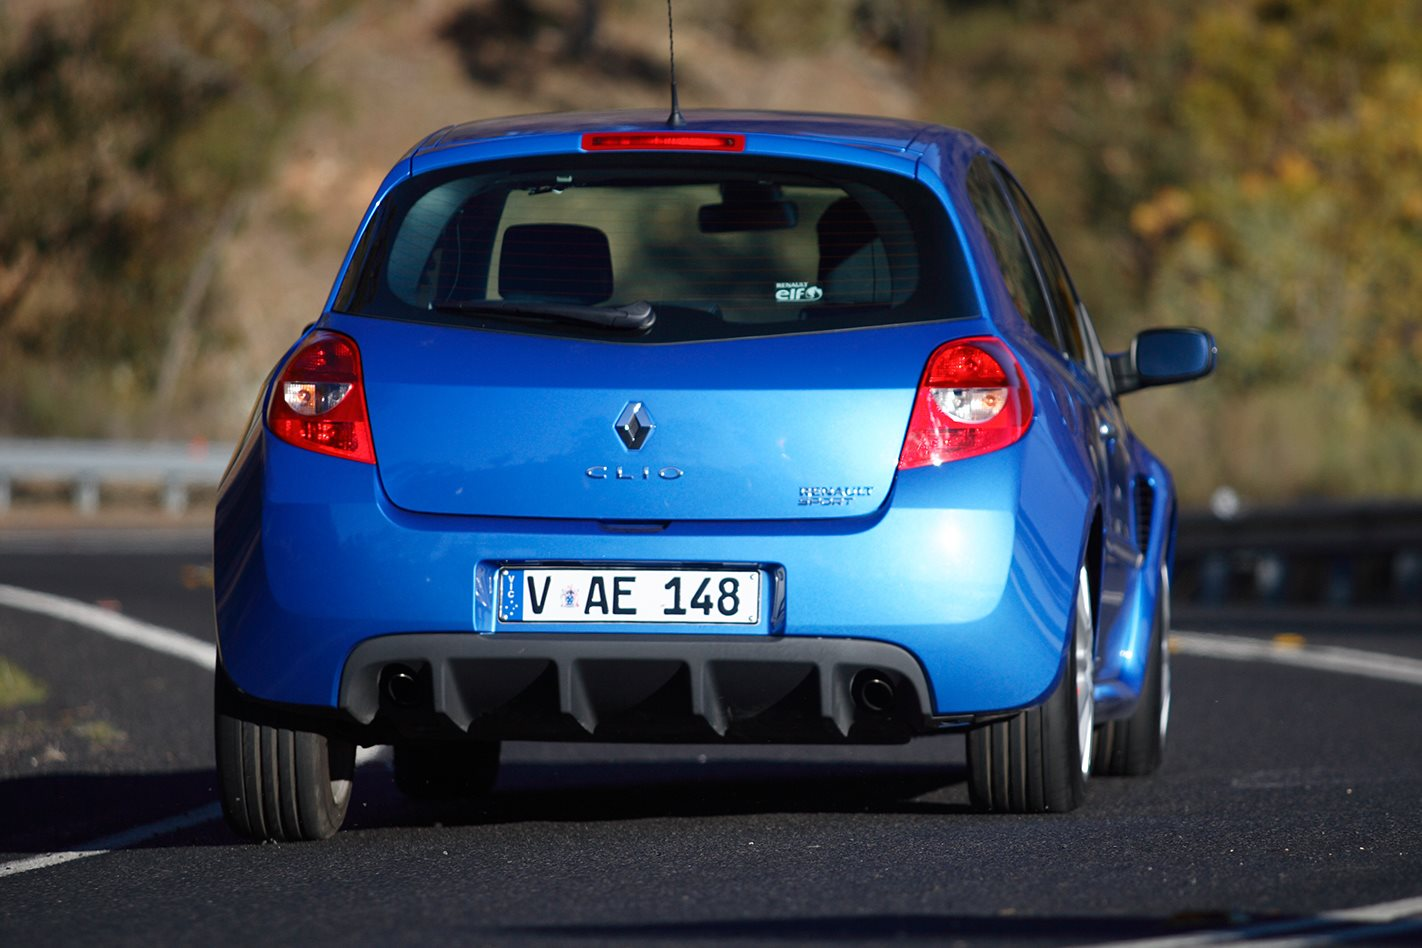 Renault Sport Clio RS 197 at Performance Car Of The Year 2008: Classic MOTOR